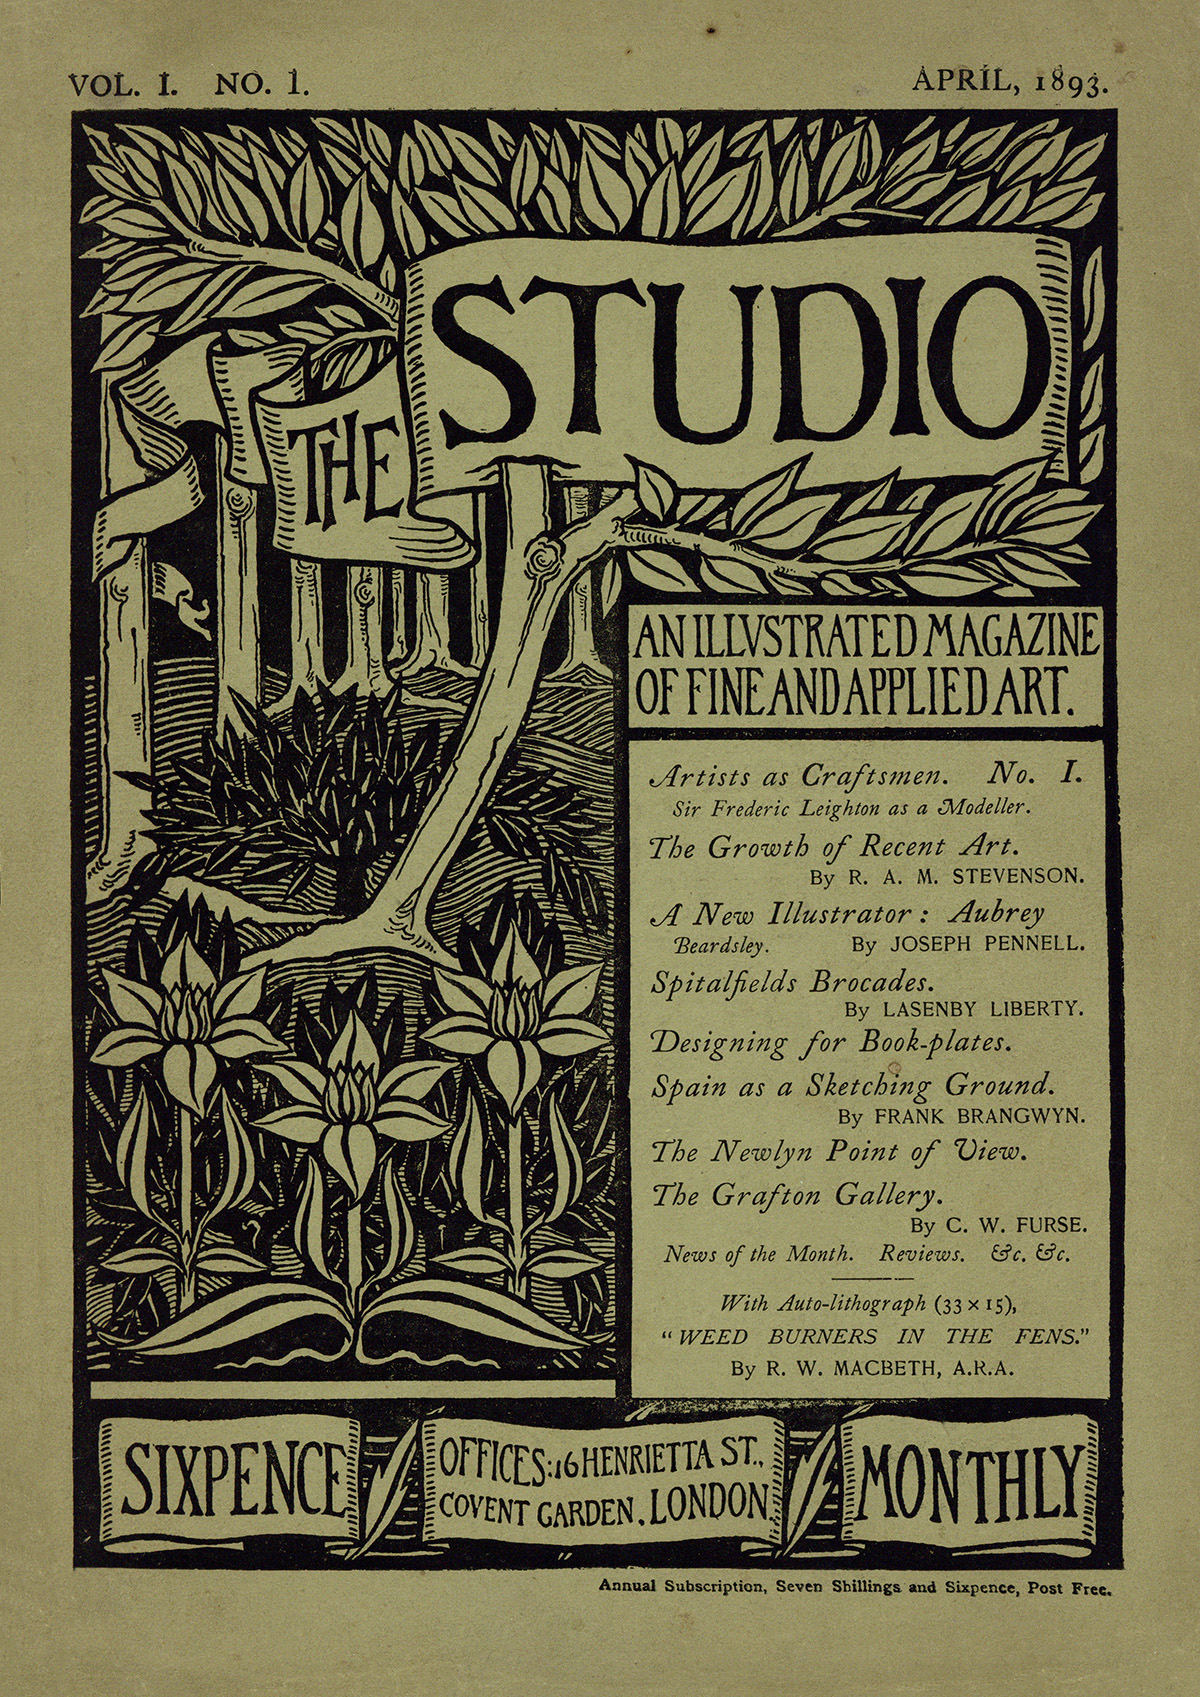 The Studio: An Illustrated Magazine of Fine and Applied Art, Vol 1, No 1, April 1893.